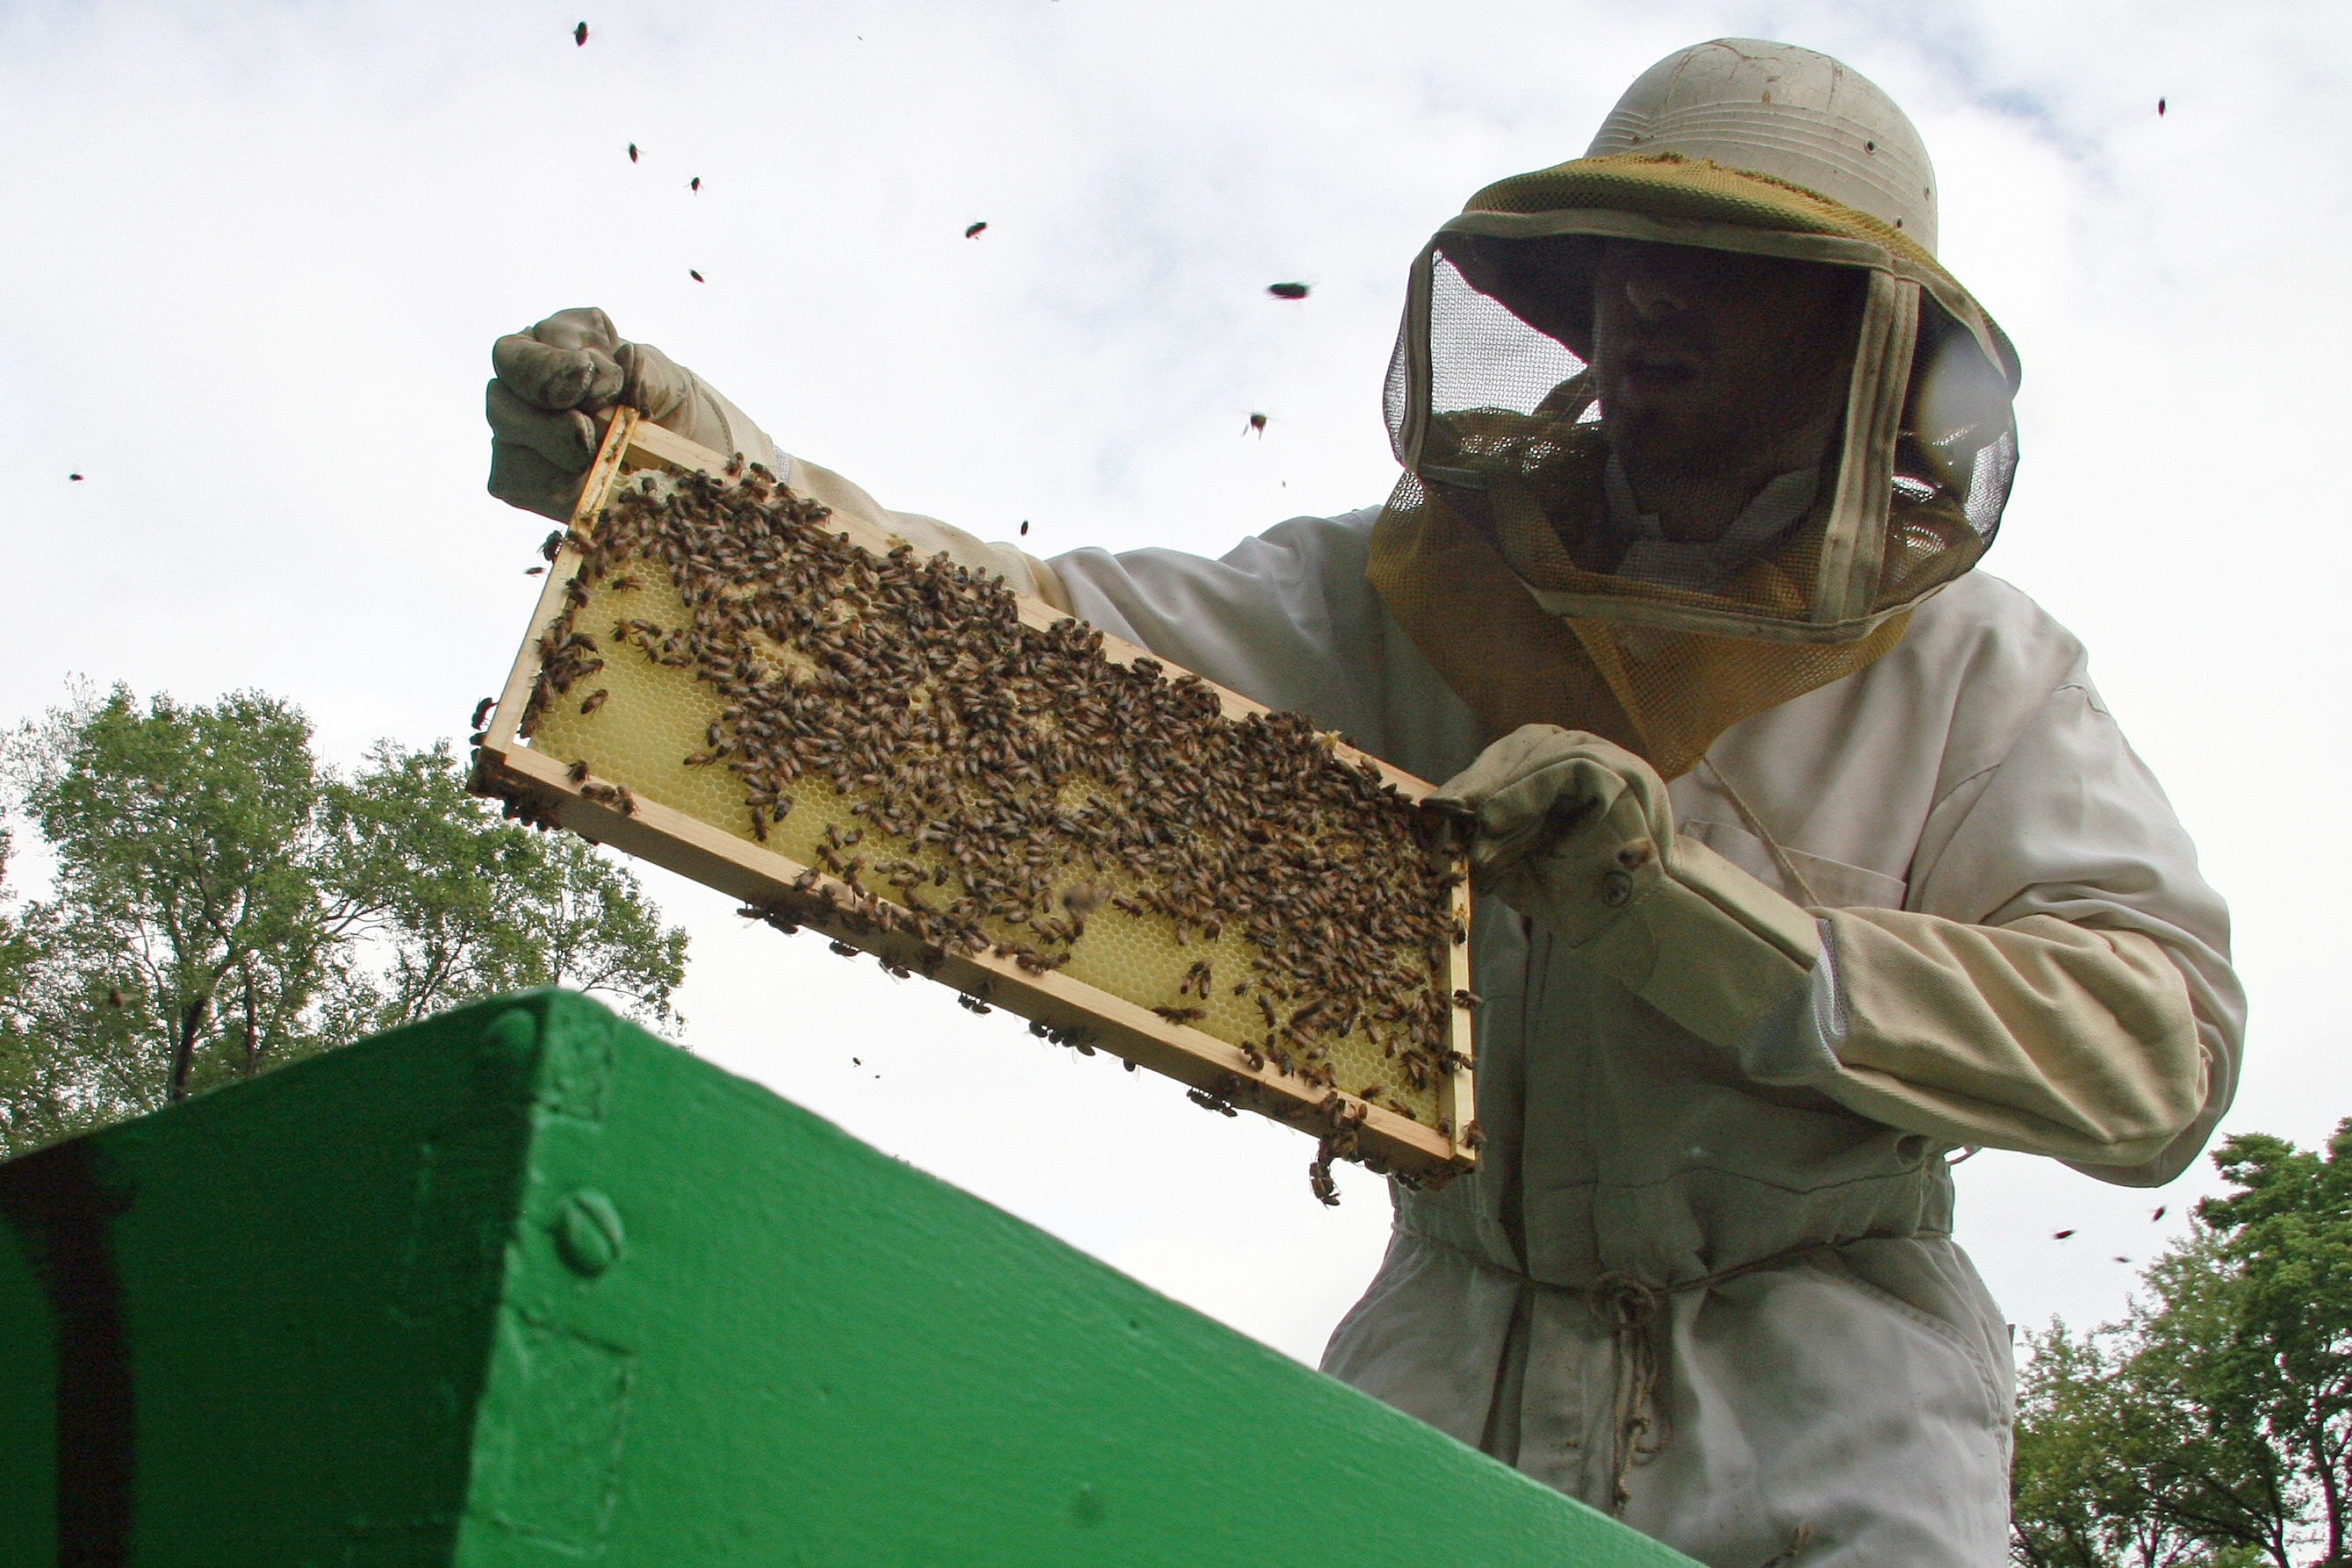 beekeeper pulling frame from the hive